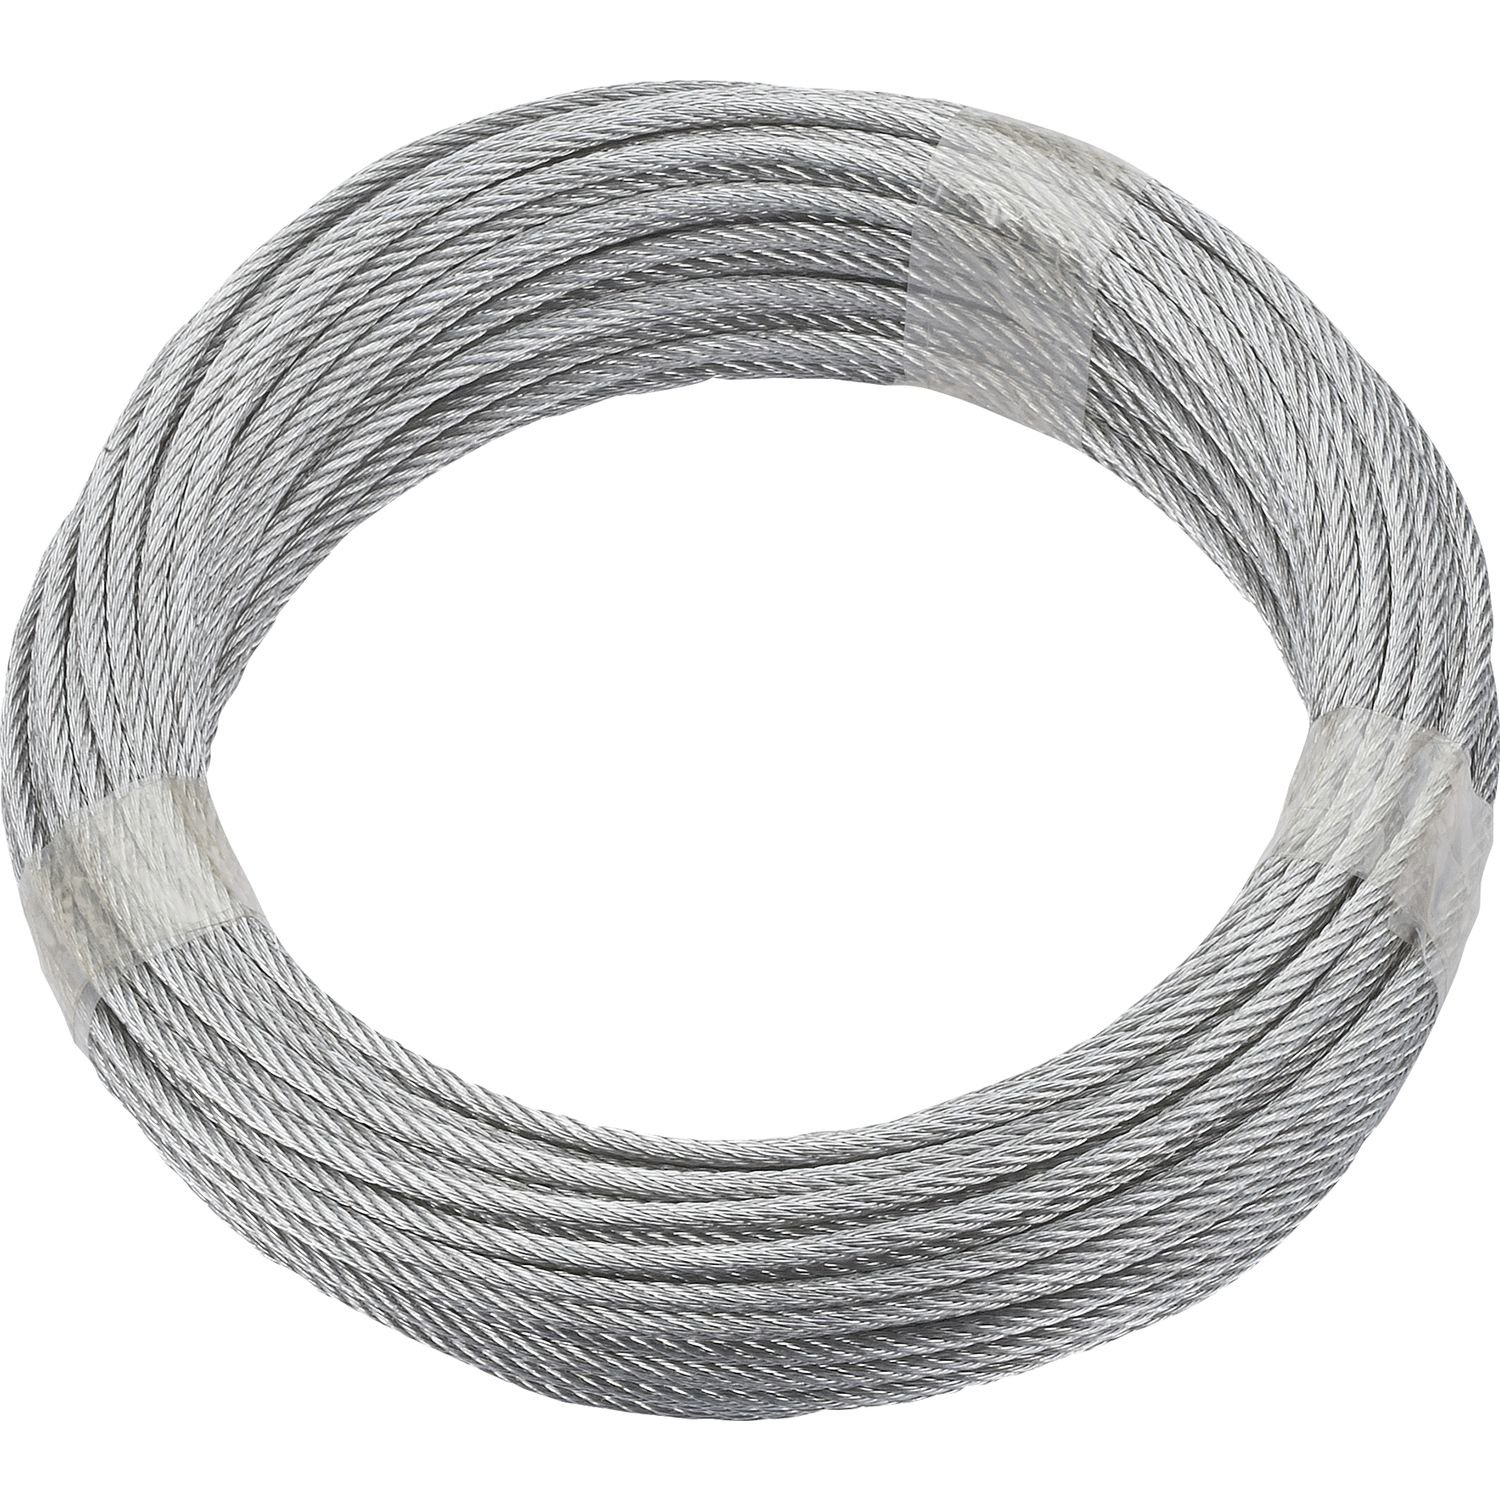 Quick-Fit Wire Rope Stainless Steel V4 A, Diameter 3 mm Length 20 m; 7 x 7, 190391 Diameter 3 mm Length 20 m; 7 x 7 Dörner + Helmer